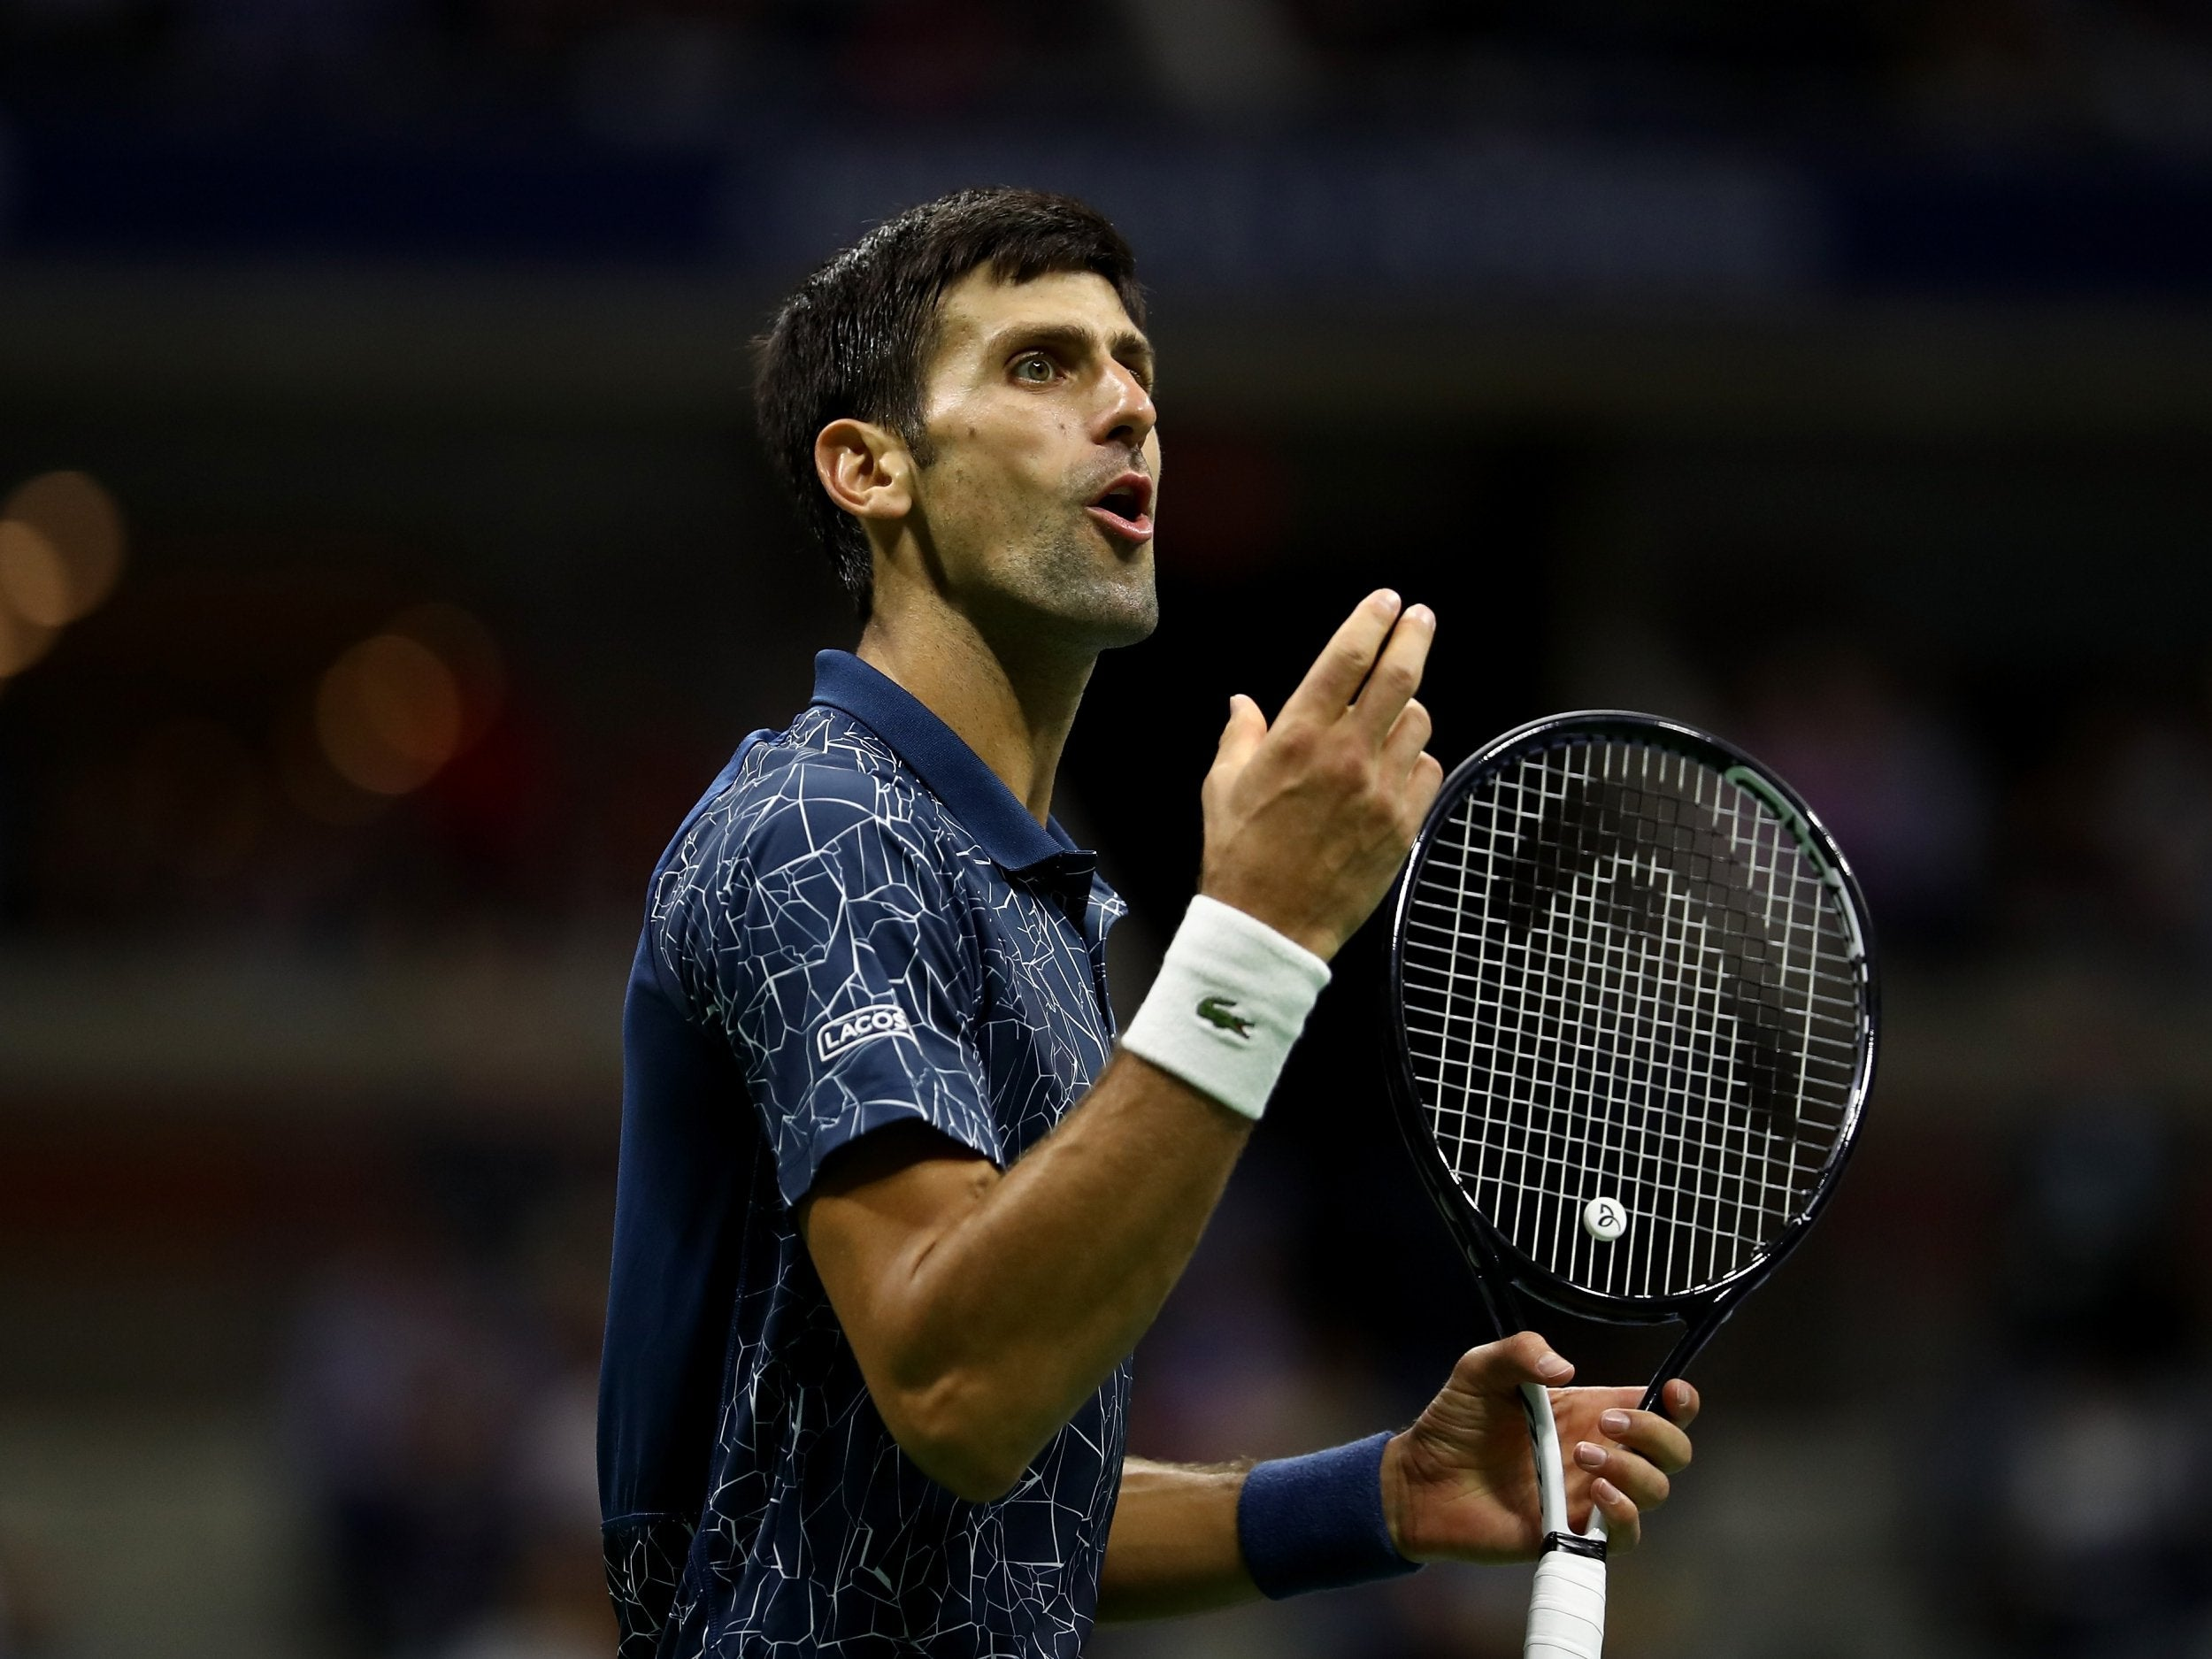 Novak Djokovic Criticises Serena Williams Umpire For Unnecessary Actions But Dismisses Sexism Claims The Independent The Independent